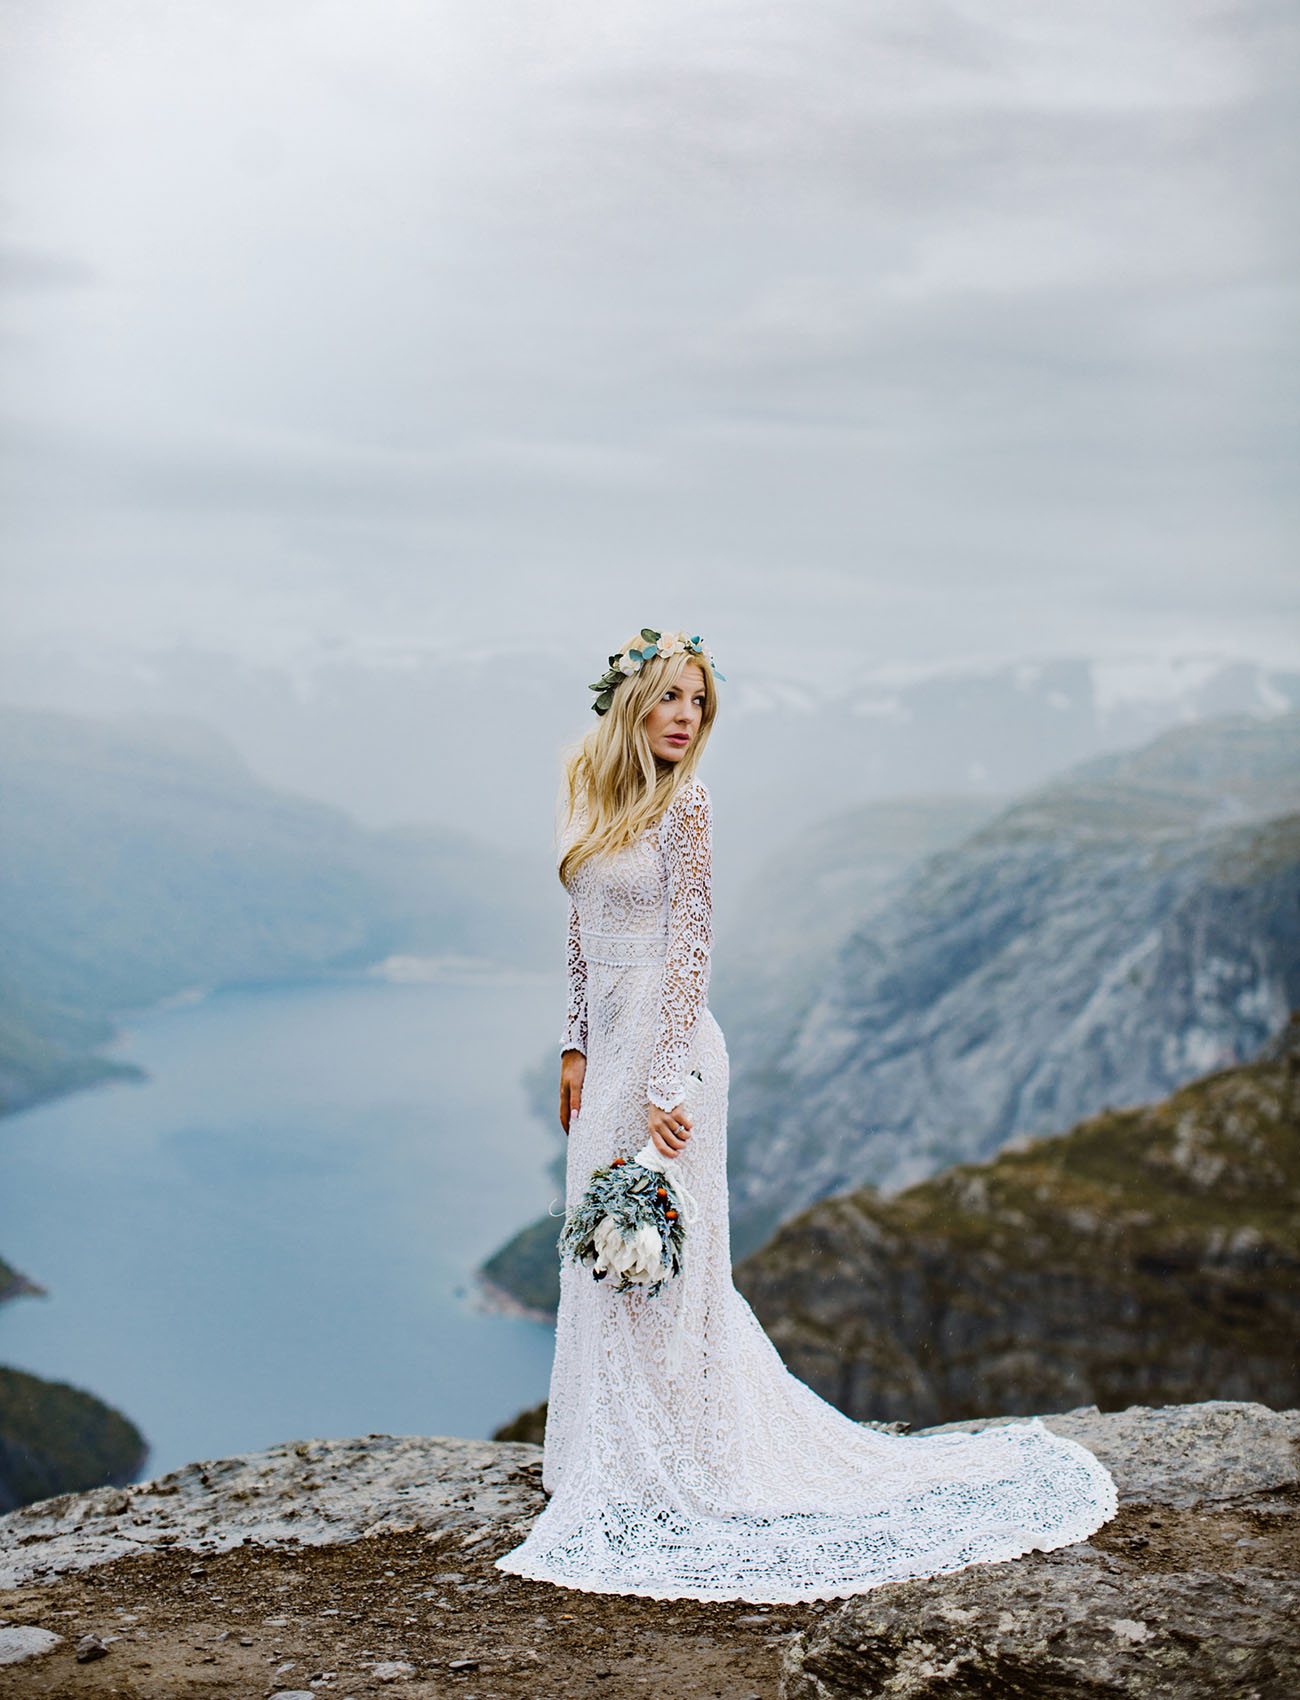 She was wearing a boho lace wedding dress with a high neckline, long sleeves and a train, her waist was highlighted with a sash